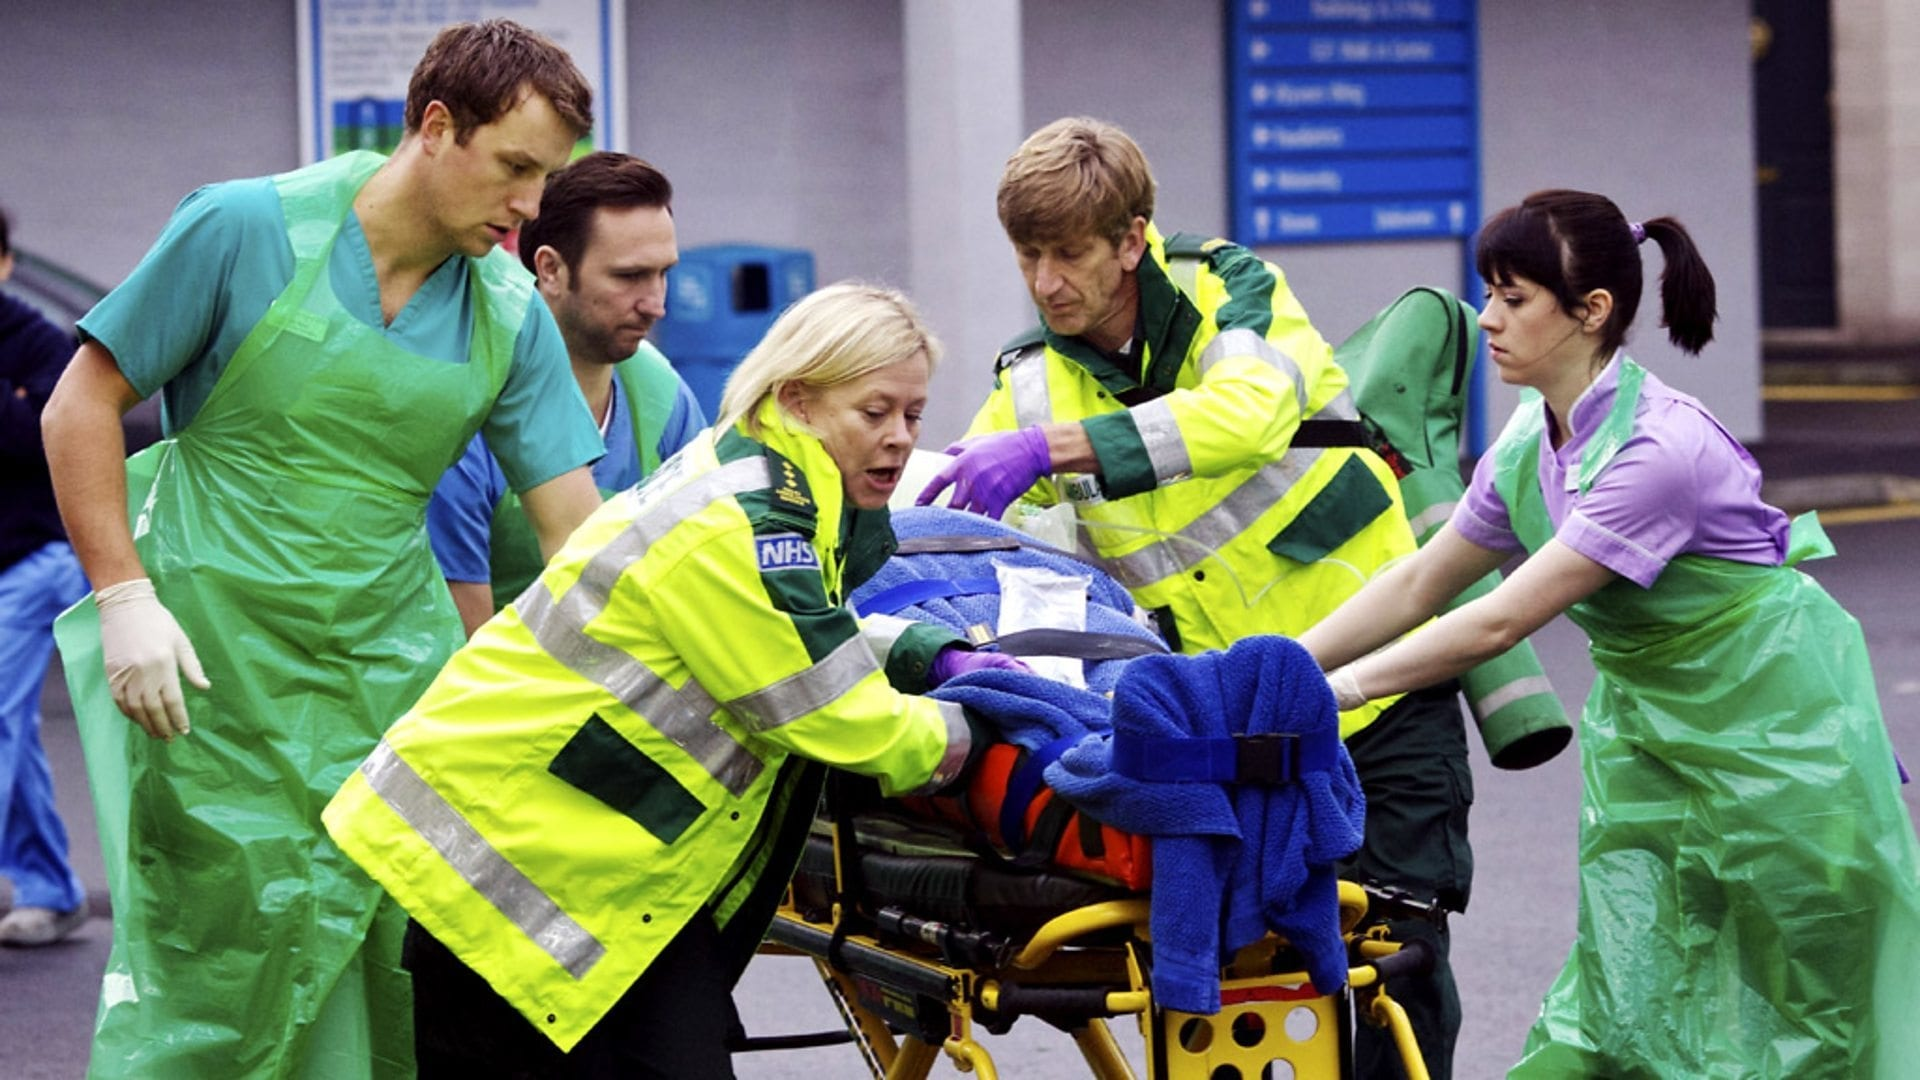 Casualty Season 27 :Episode 26  Cross Roads